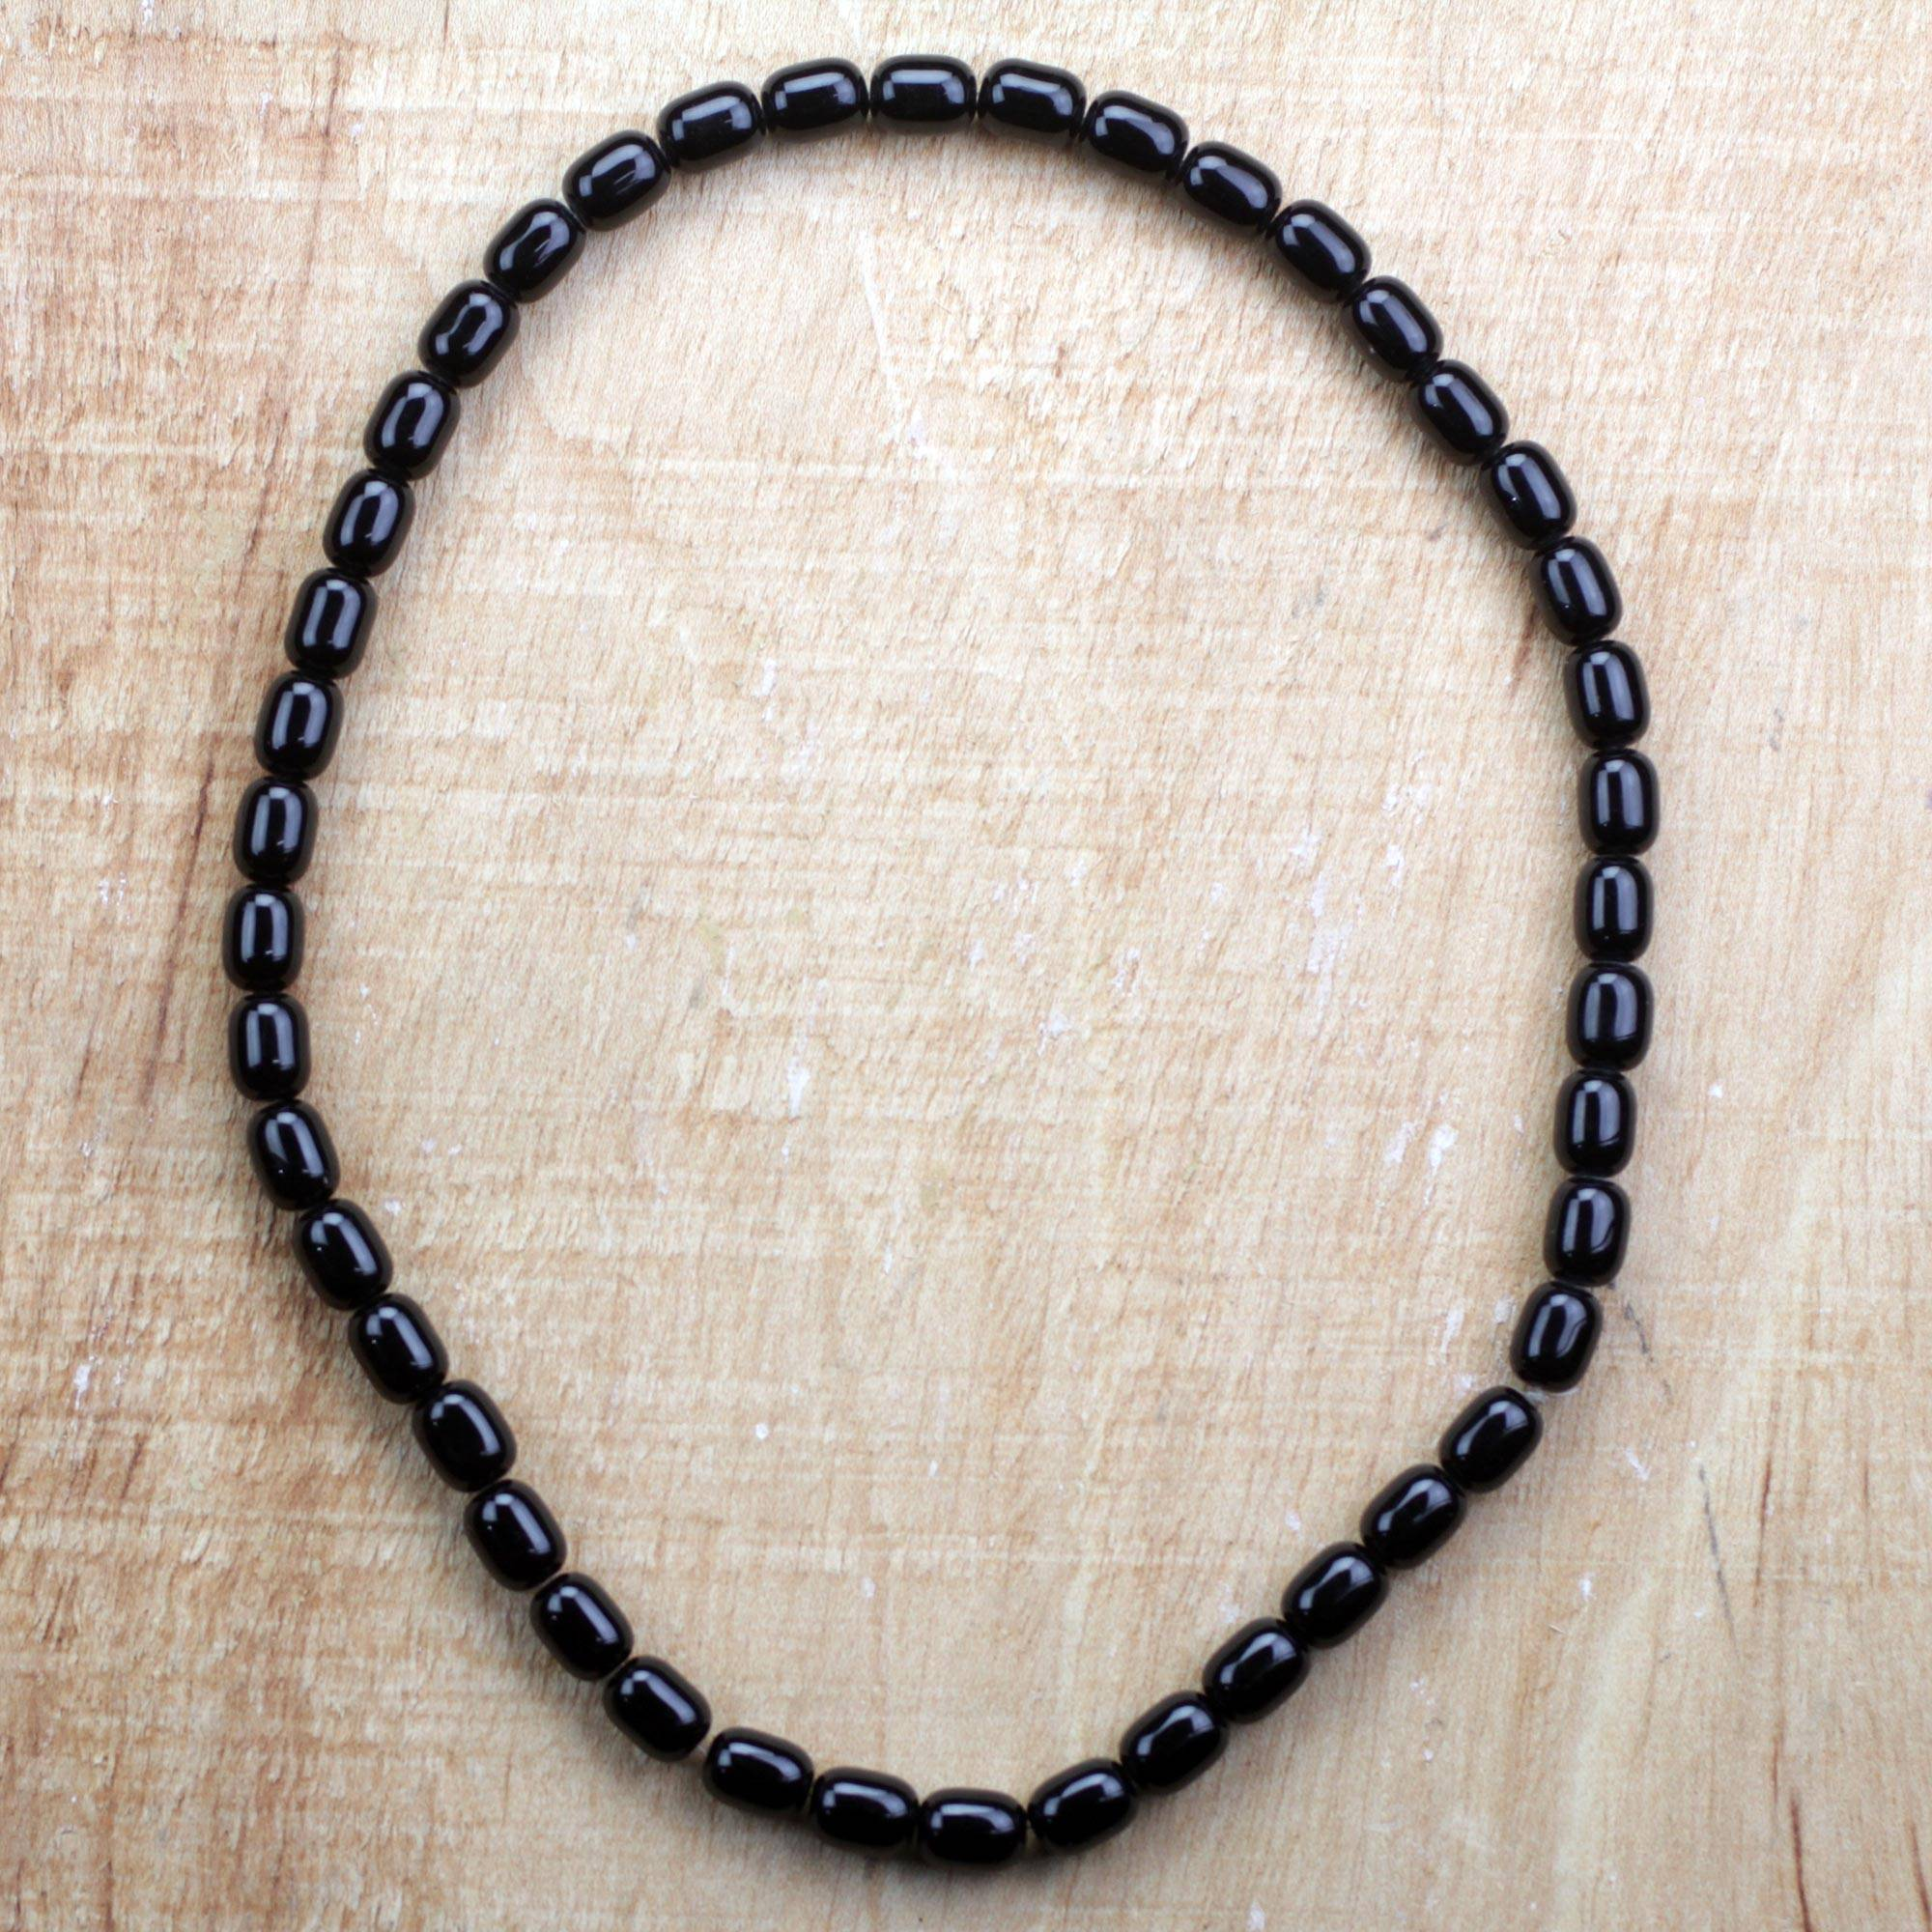 4b22928abf639 Black Recycled Glass Beaded Necklace from Ghana, 'Bead Chief'